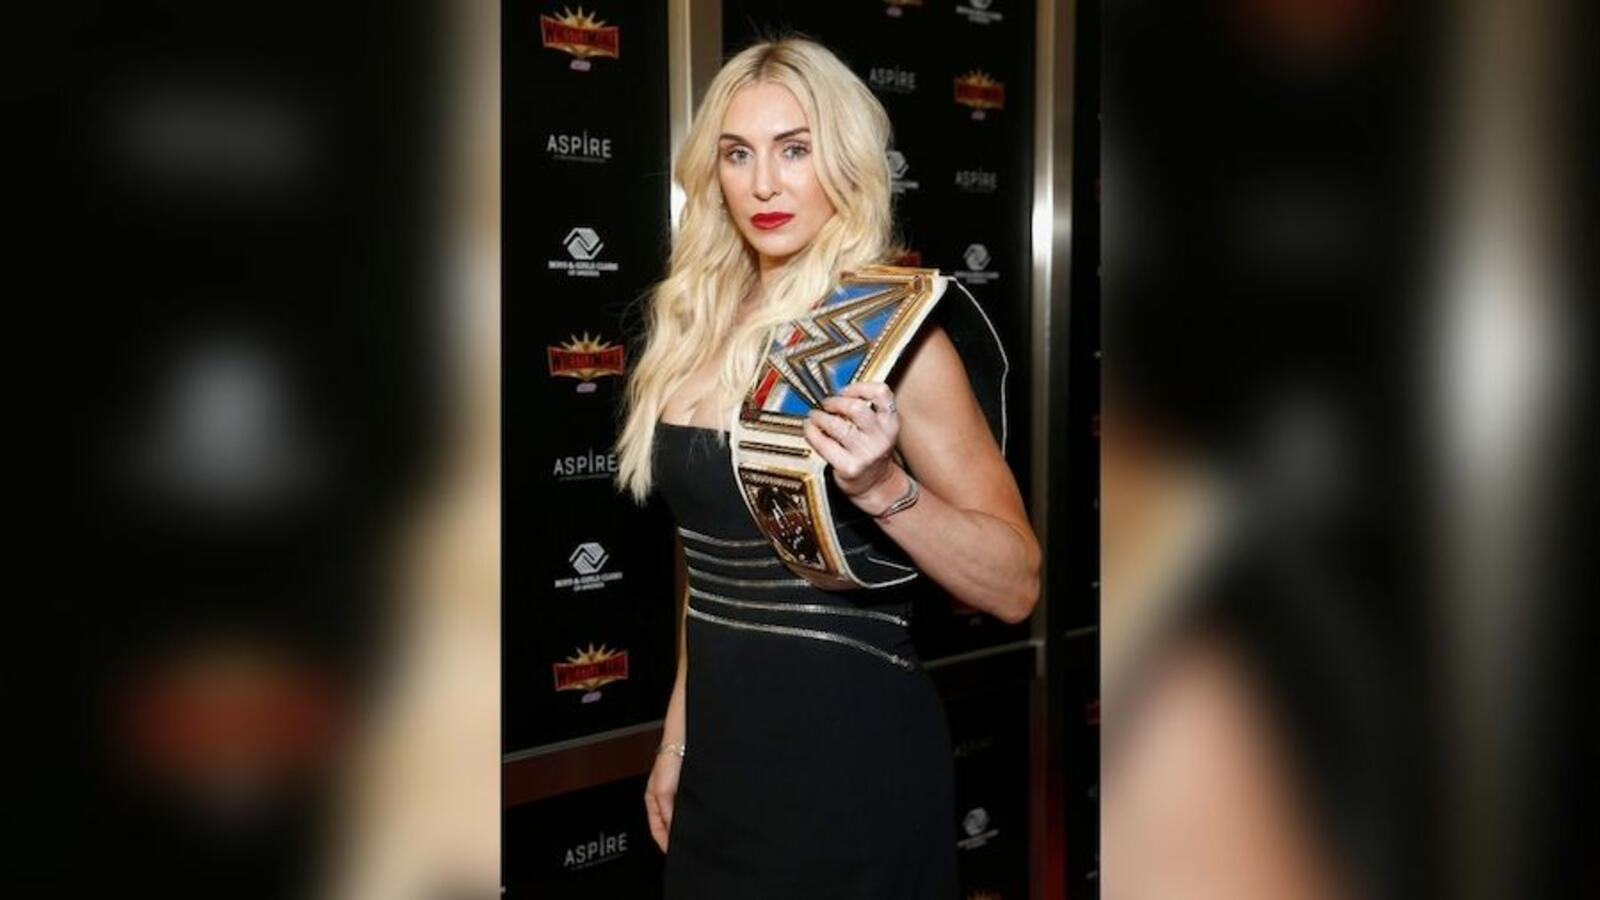 WWE Star Was 'Mad Enough' To Fight Charlotte Flair Backstage: Report